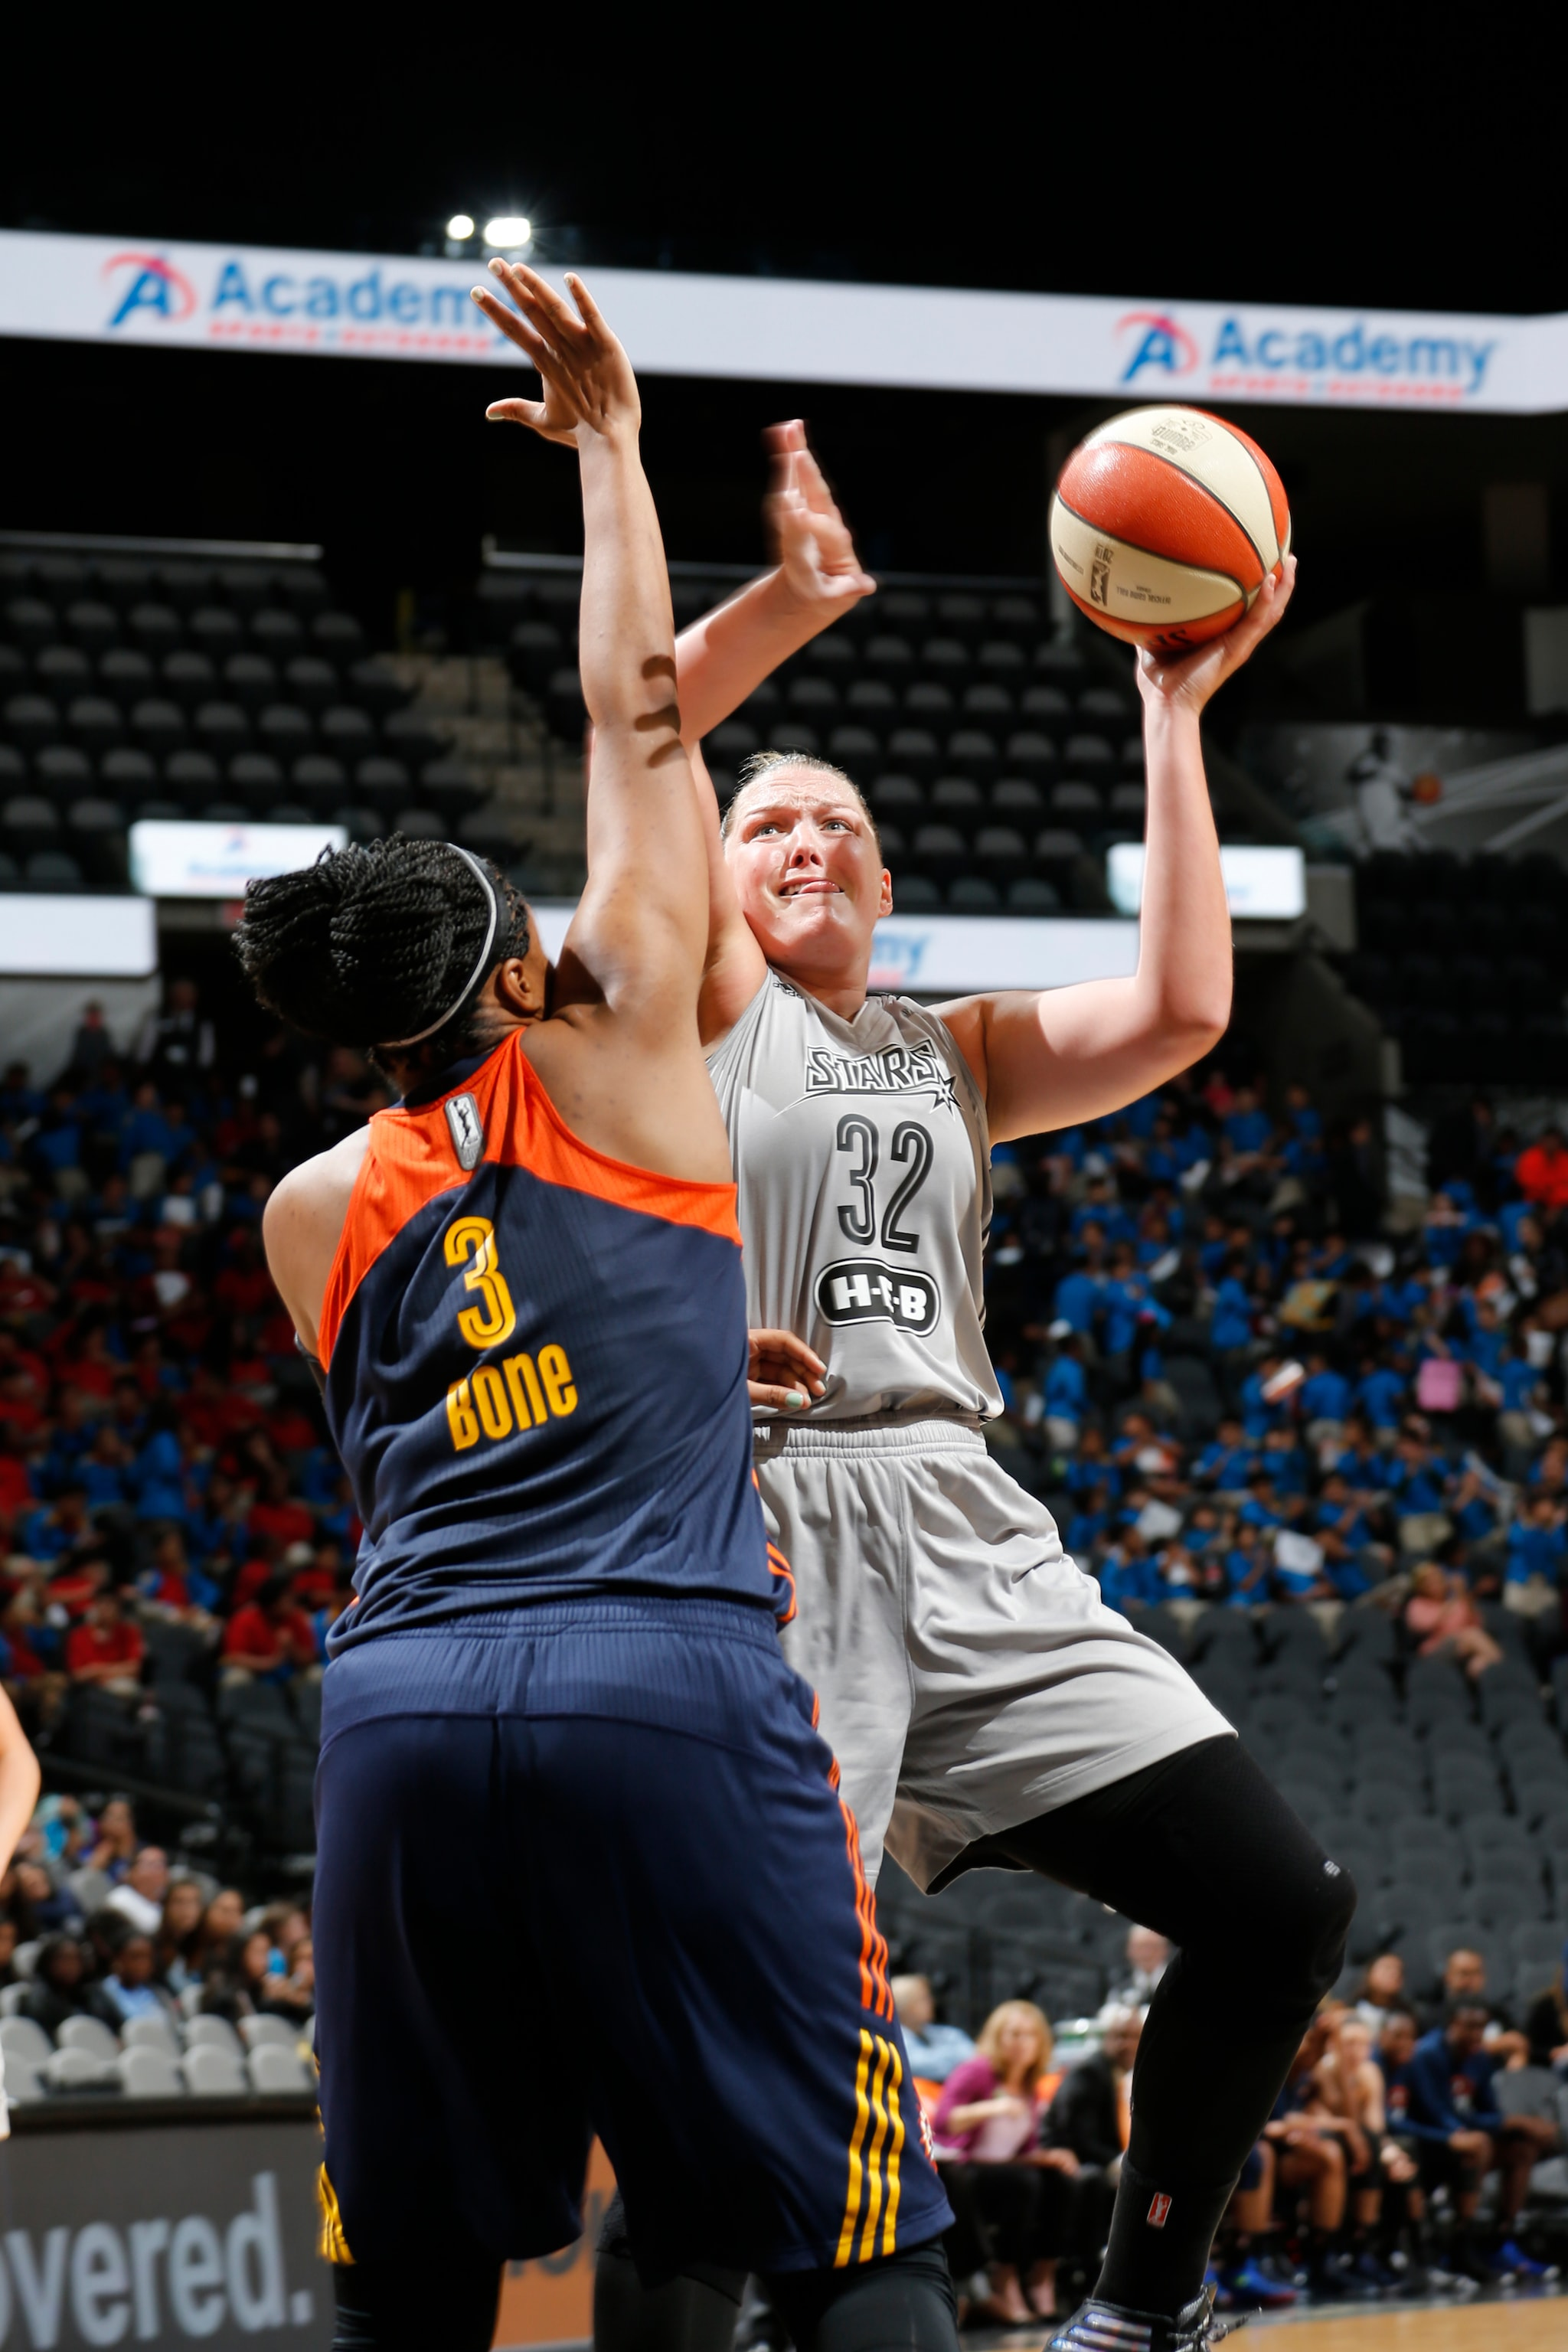 SAN ANTONIO, TX - MAY 19: Jayne Appel-Marinelli #32 of the San Antonio Stars shoots the ball against the Connecticut Sun on May 19, 2016 at AT&T Center in San Antonio, Texas. NOTE TO USER: User expressly acknowledges and agrees that, by downloading and or using this Photograph, user is consenting to the terms and conditions of the Getty Images License Agreement. Mandatory Copyright Notice: Copyright 2016 NBAE (Photo by Chris Covatta/NBAE via Getty Images)